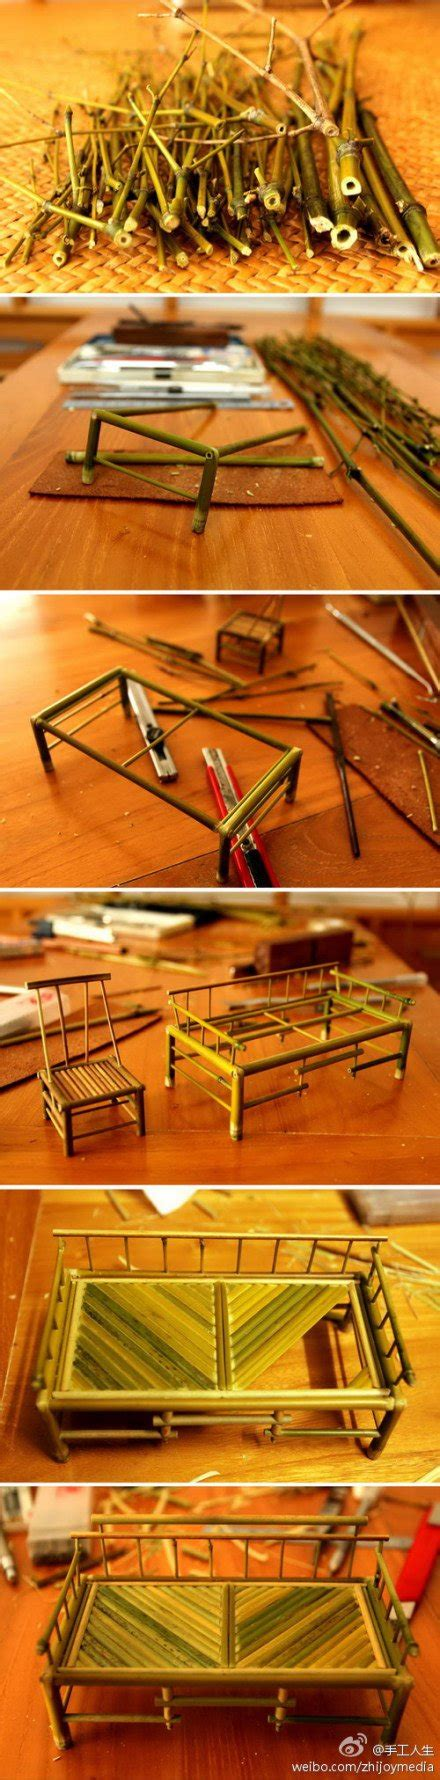 How To Make Bamboo Chair by How To Make Beautiful Diy Bamboo Chair Furniture Step By